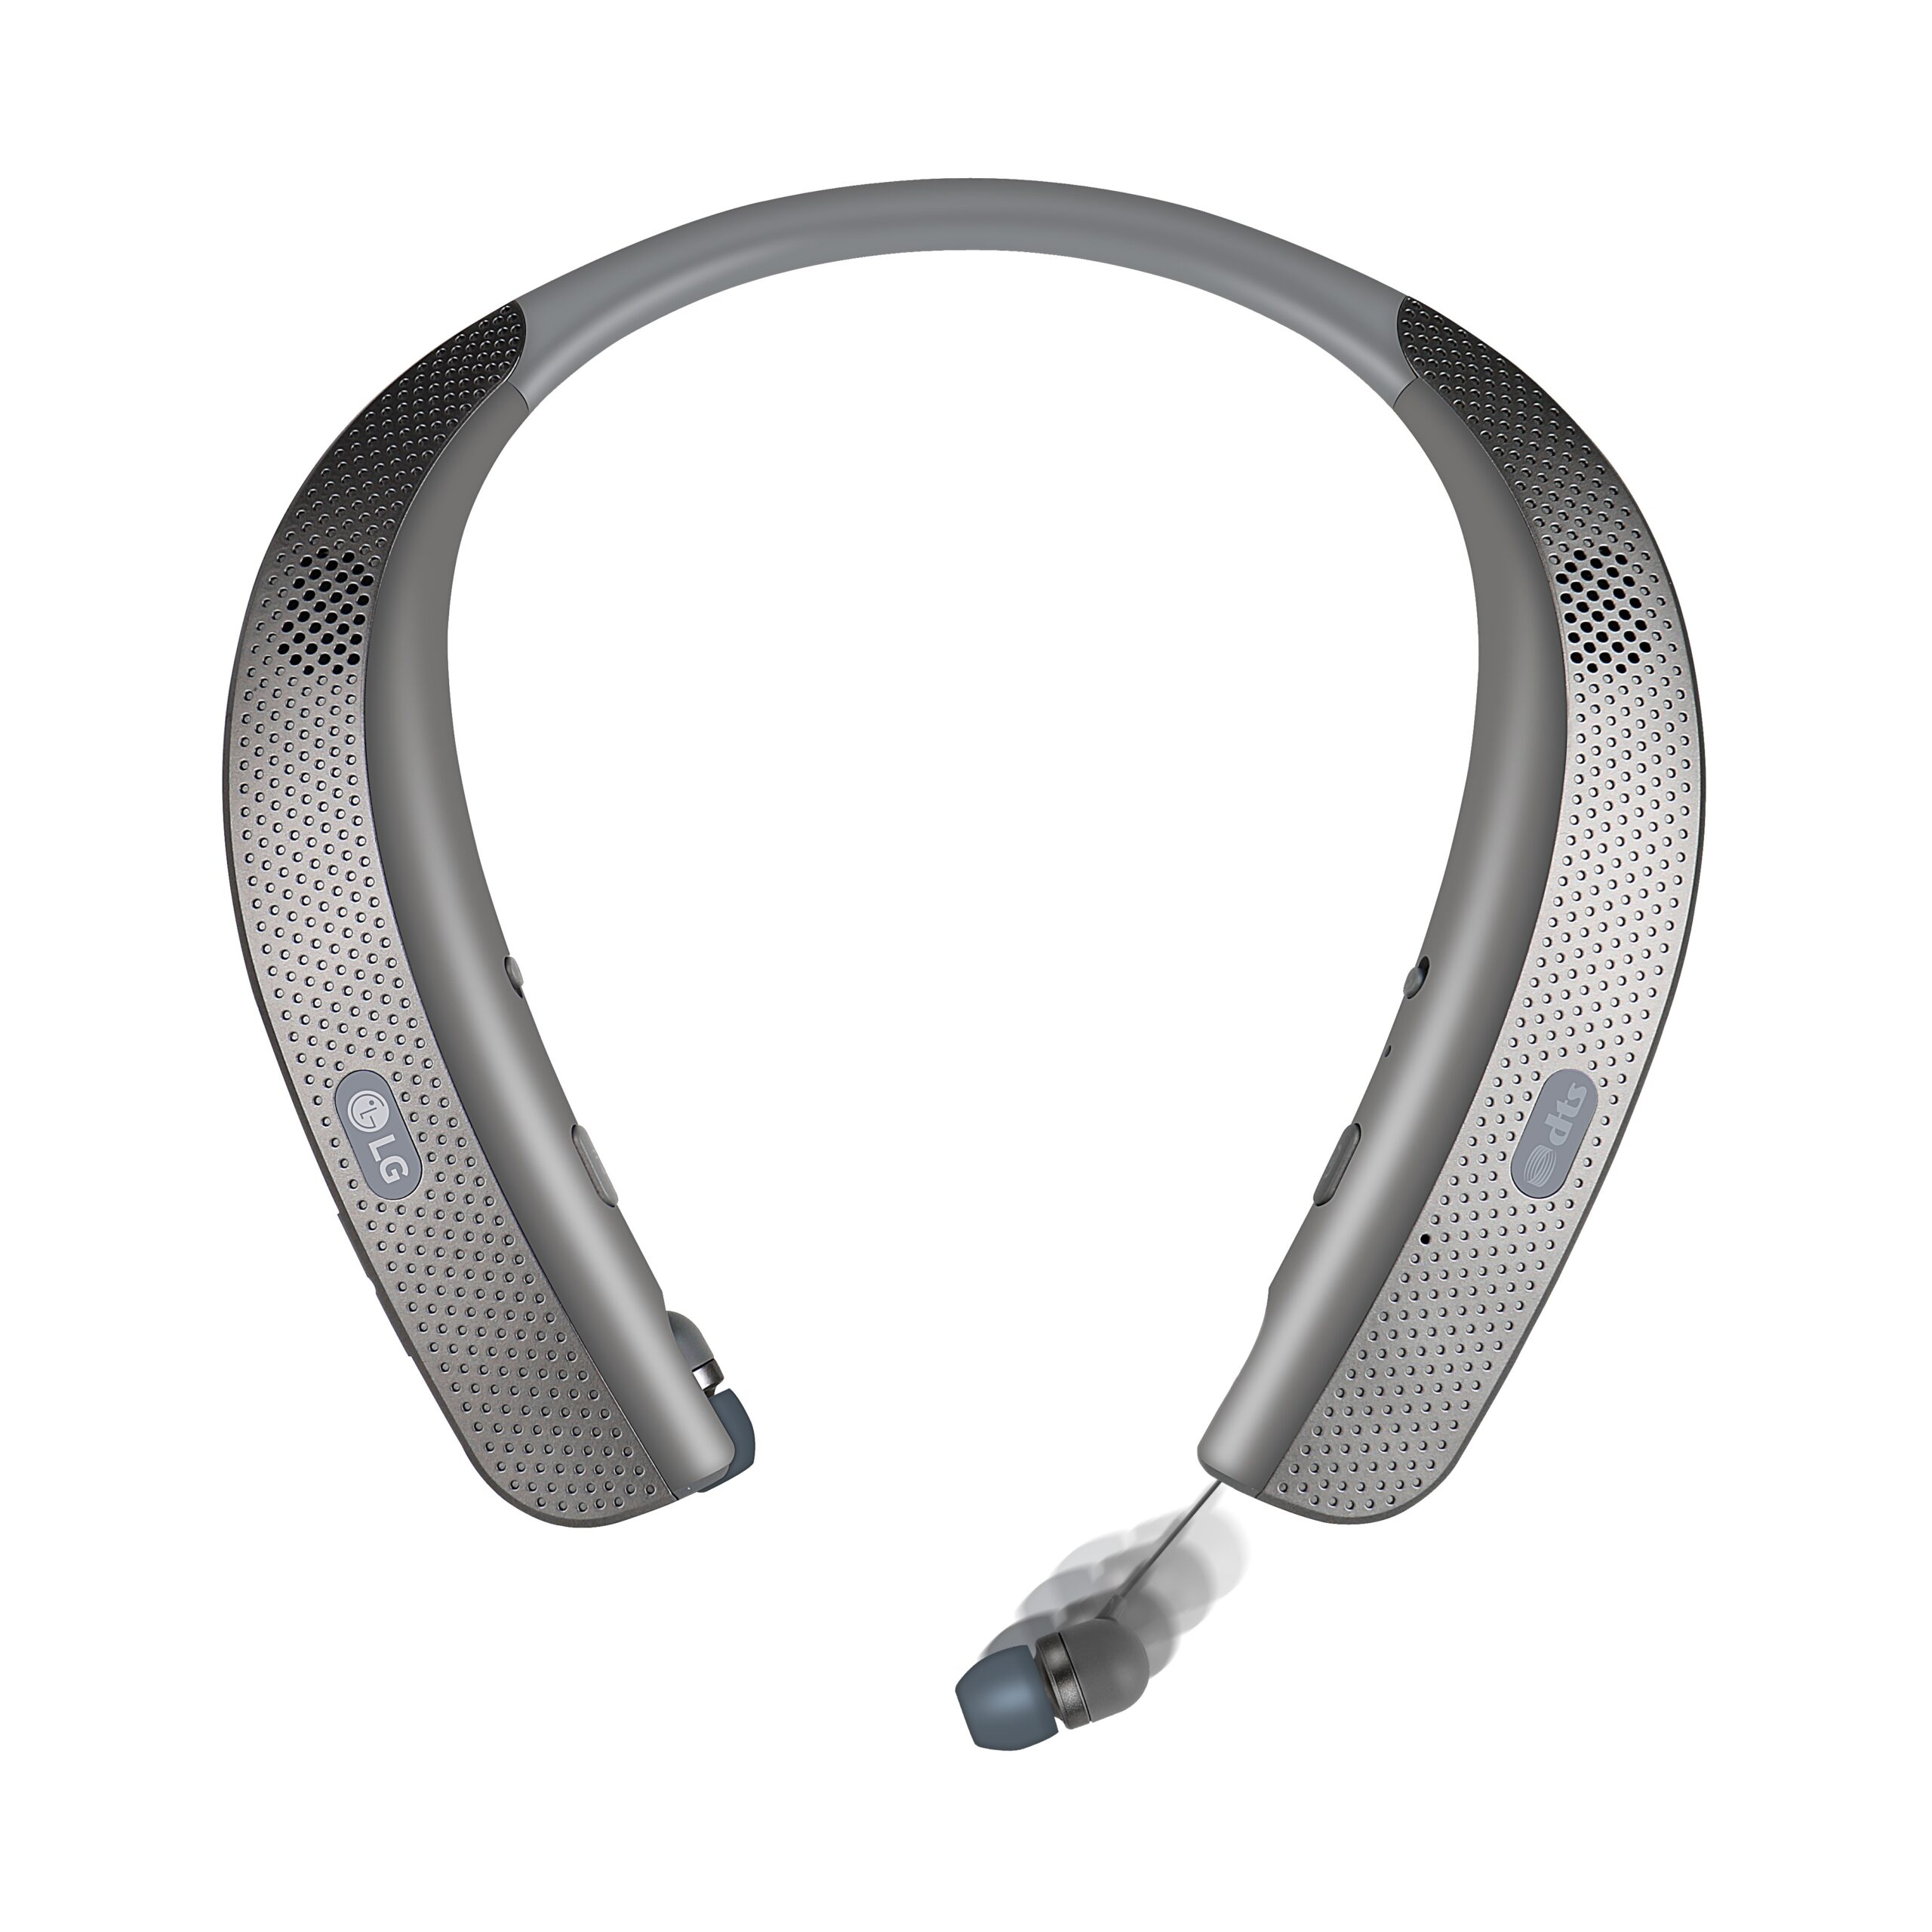 The top view of the LG Tone Studio, with the right earbud extracted from the neckband